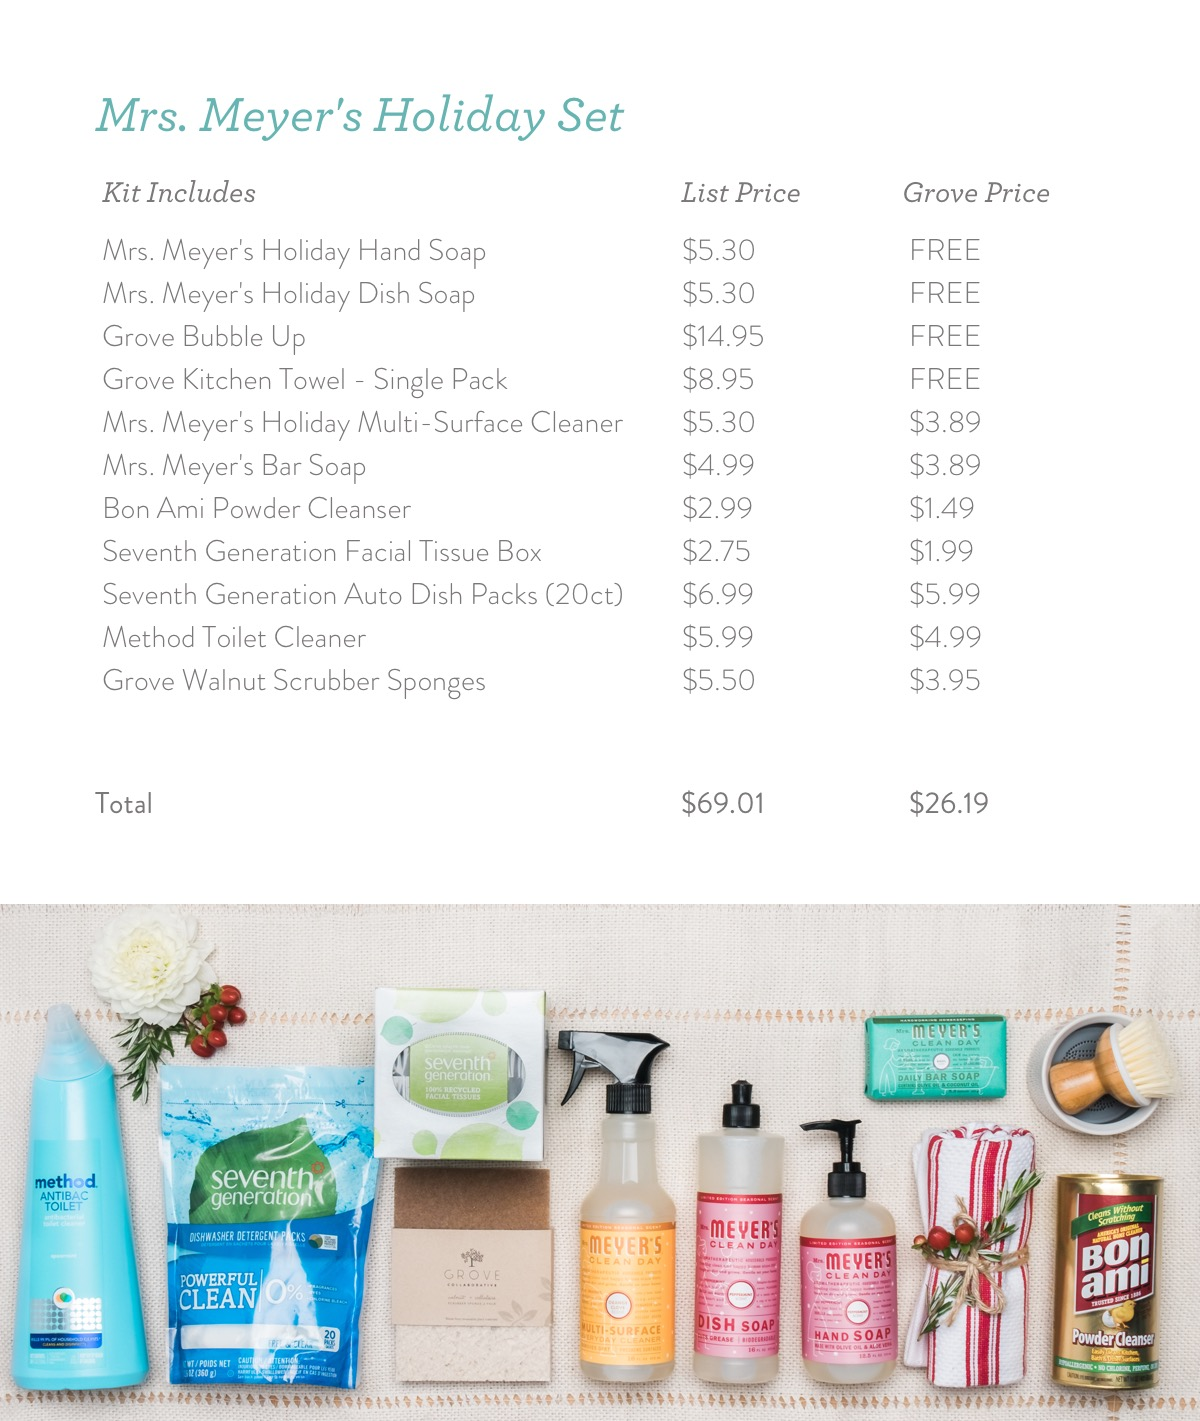 Free Mrs. Meyer's Holiday Products